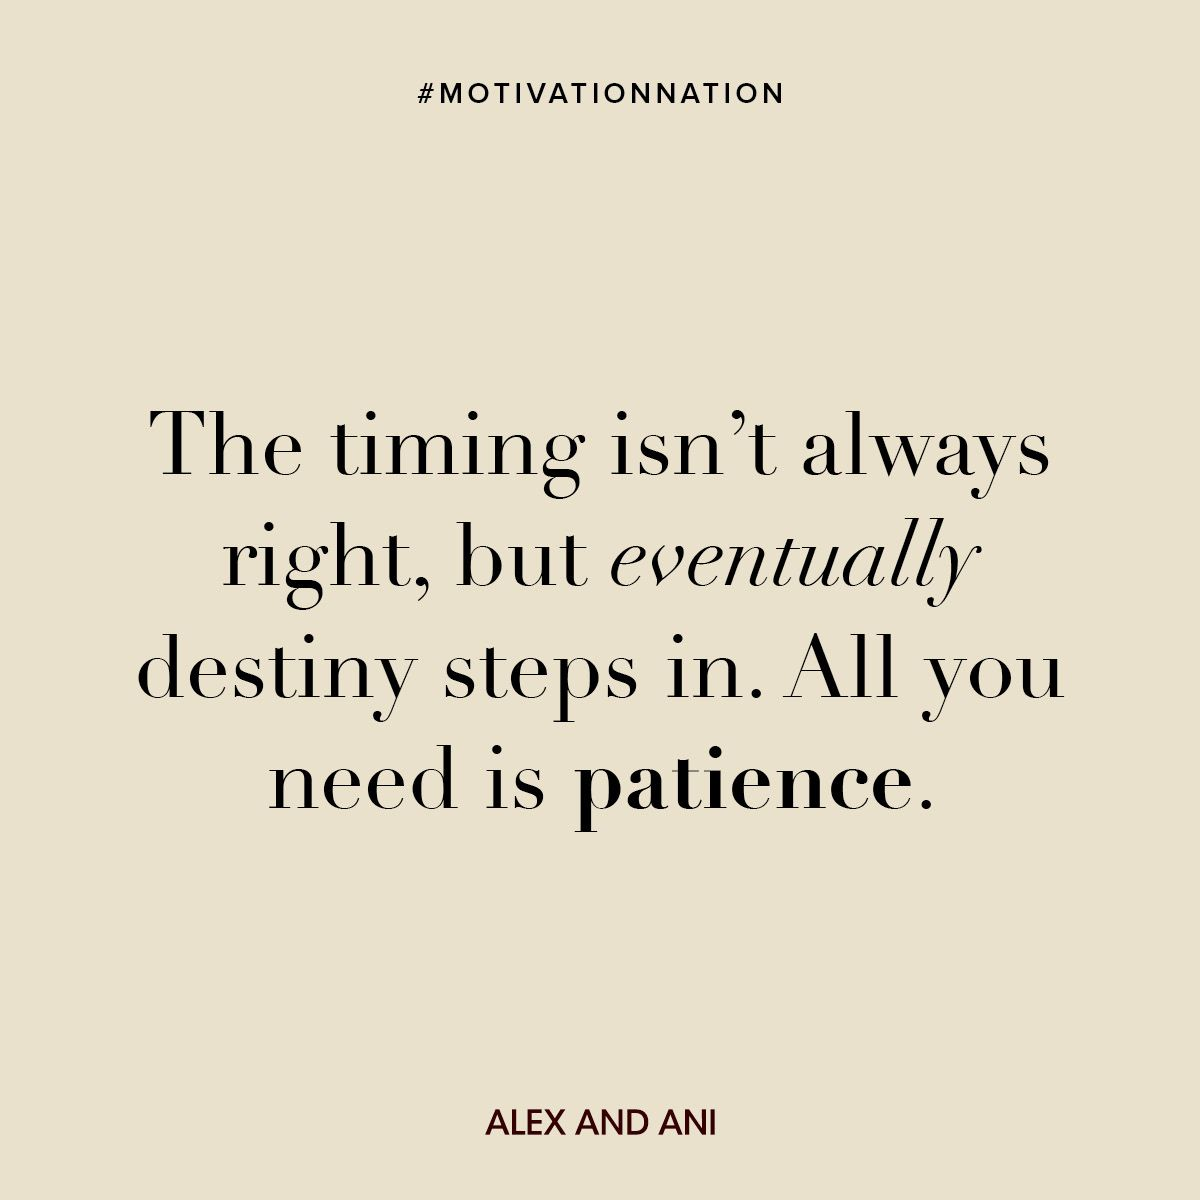 motivationnation withlove Patience QuotesPrayers For PatienceLife